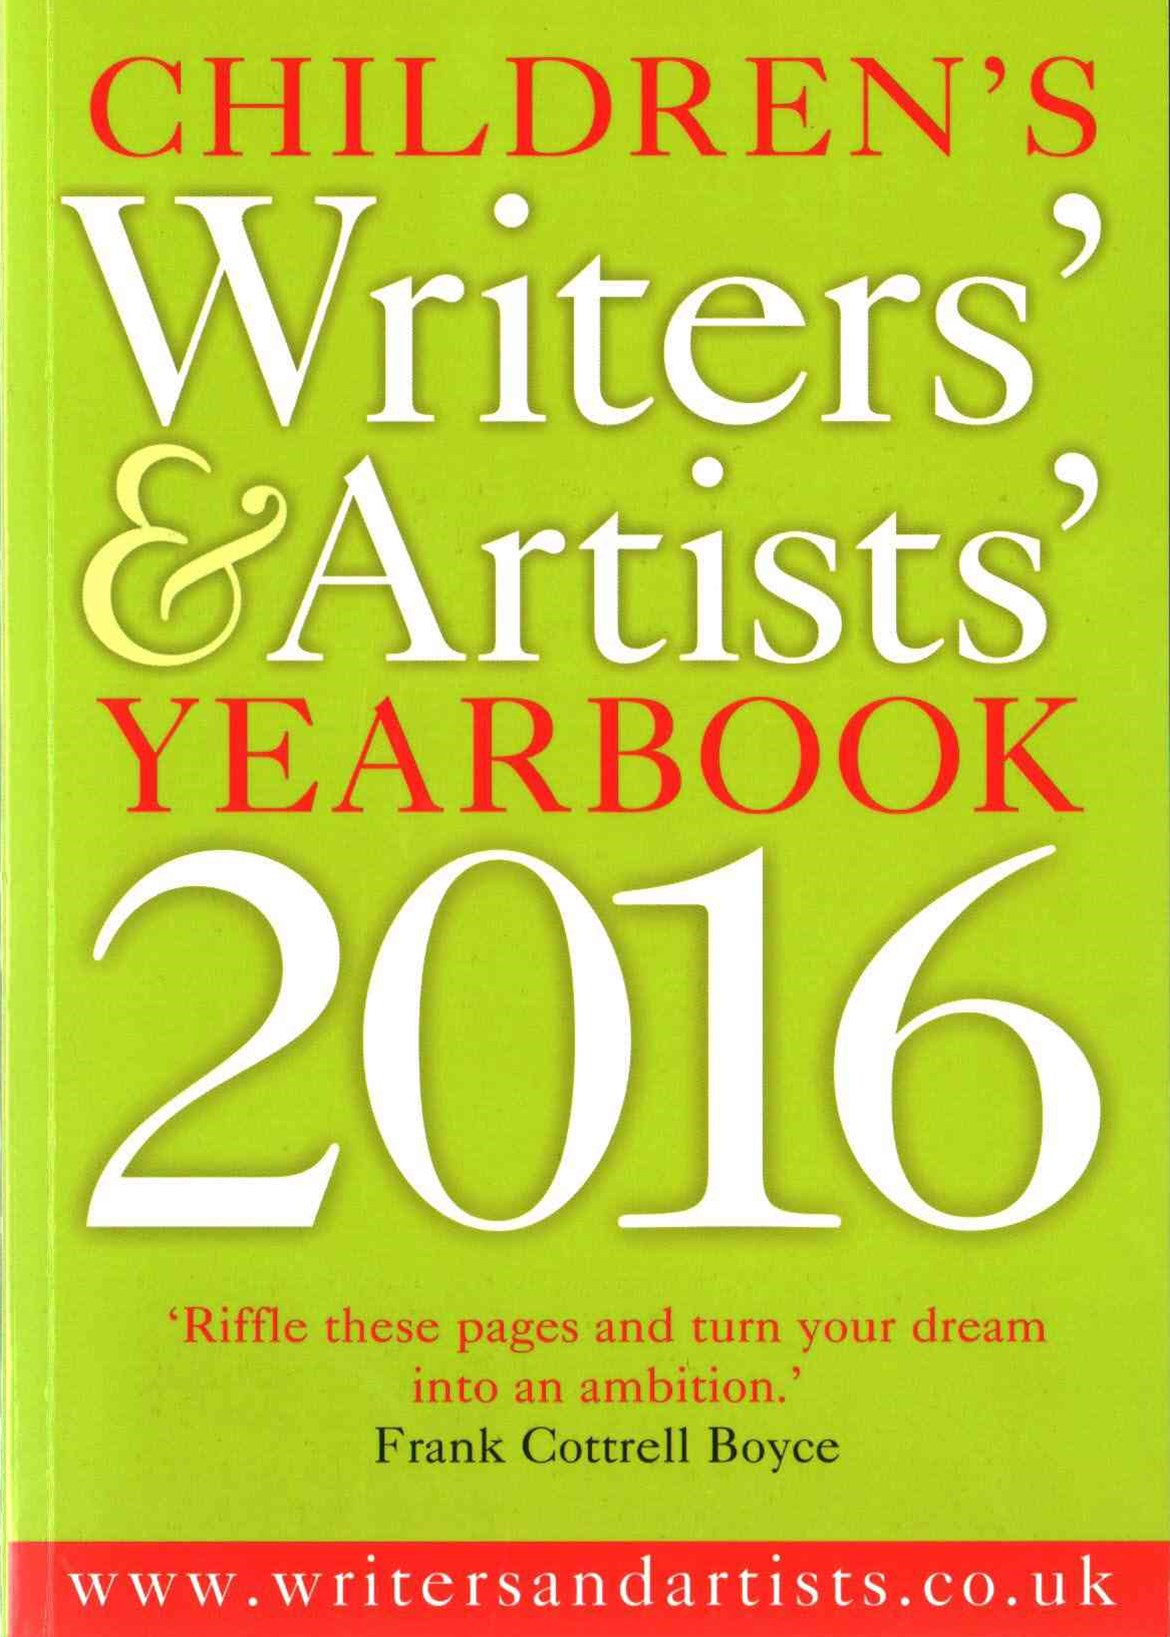 Children's Writers' and Artists' Yearbook 2016